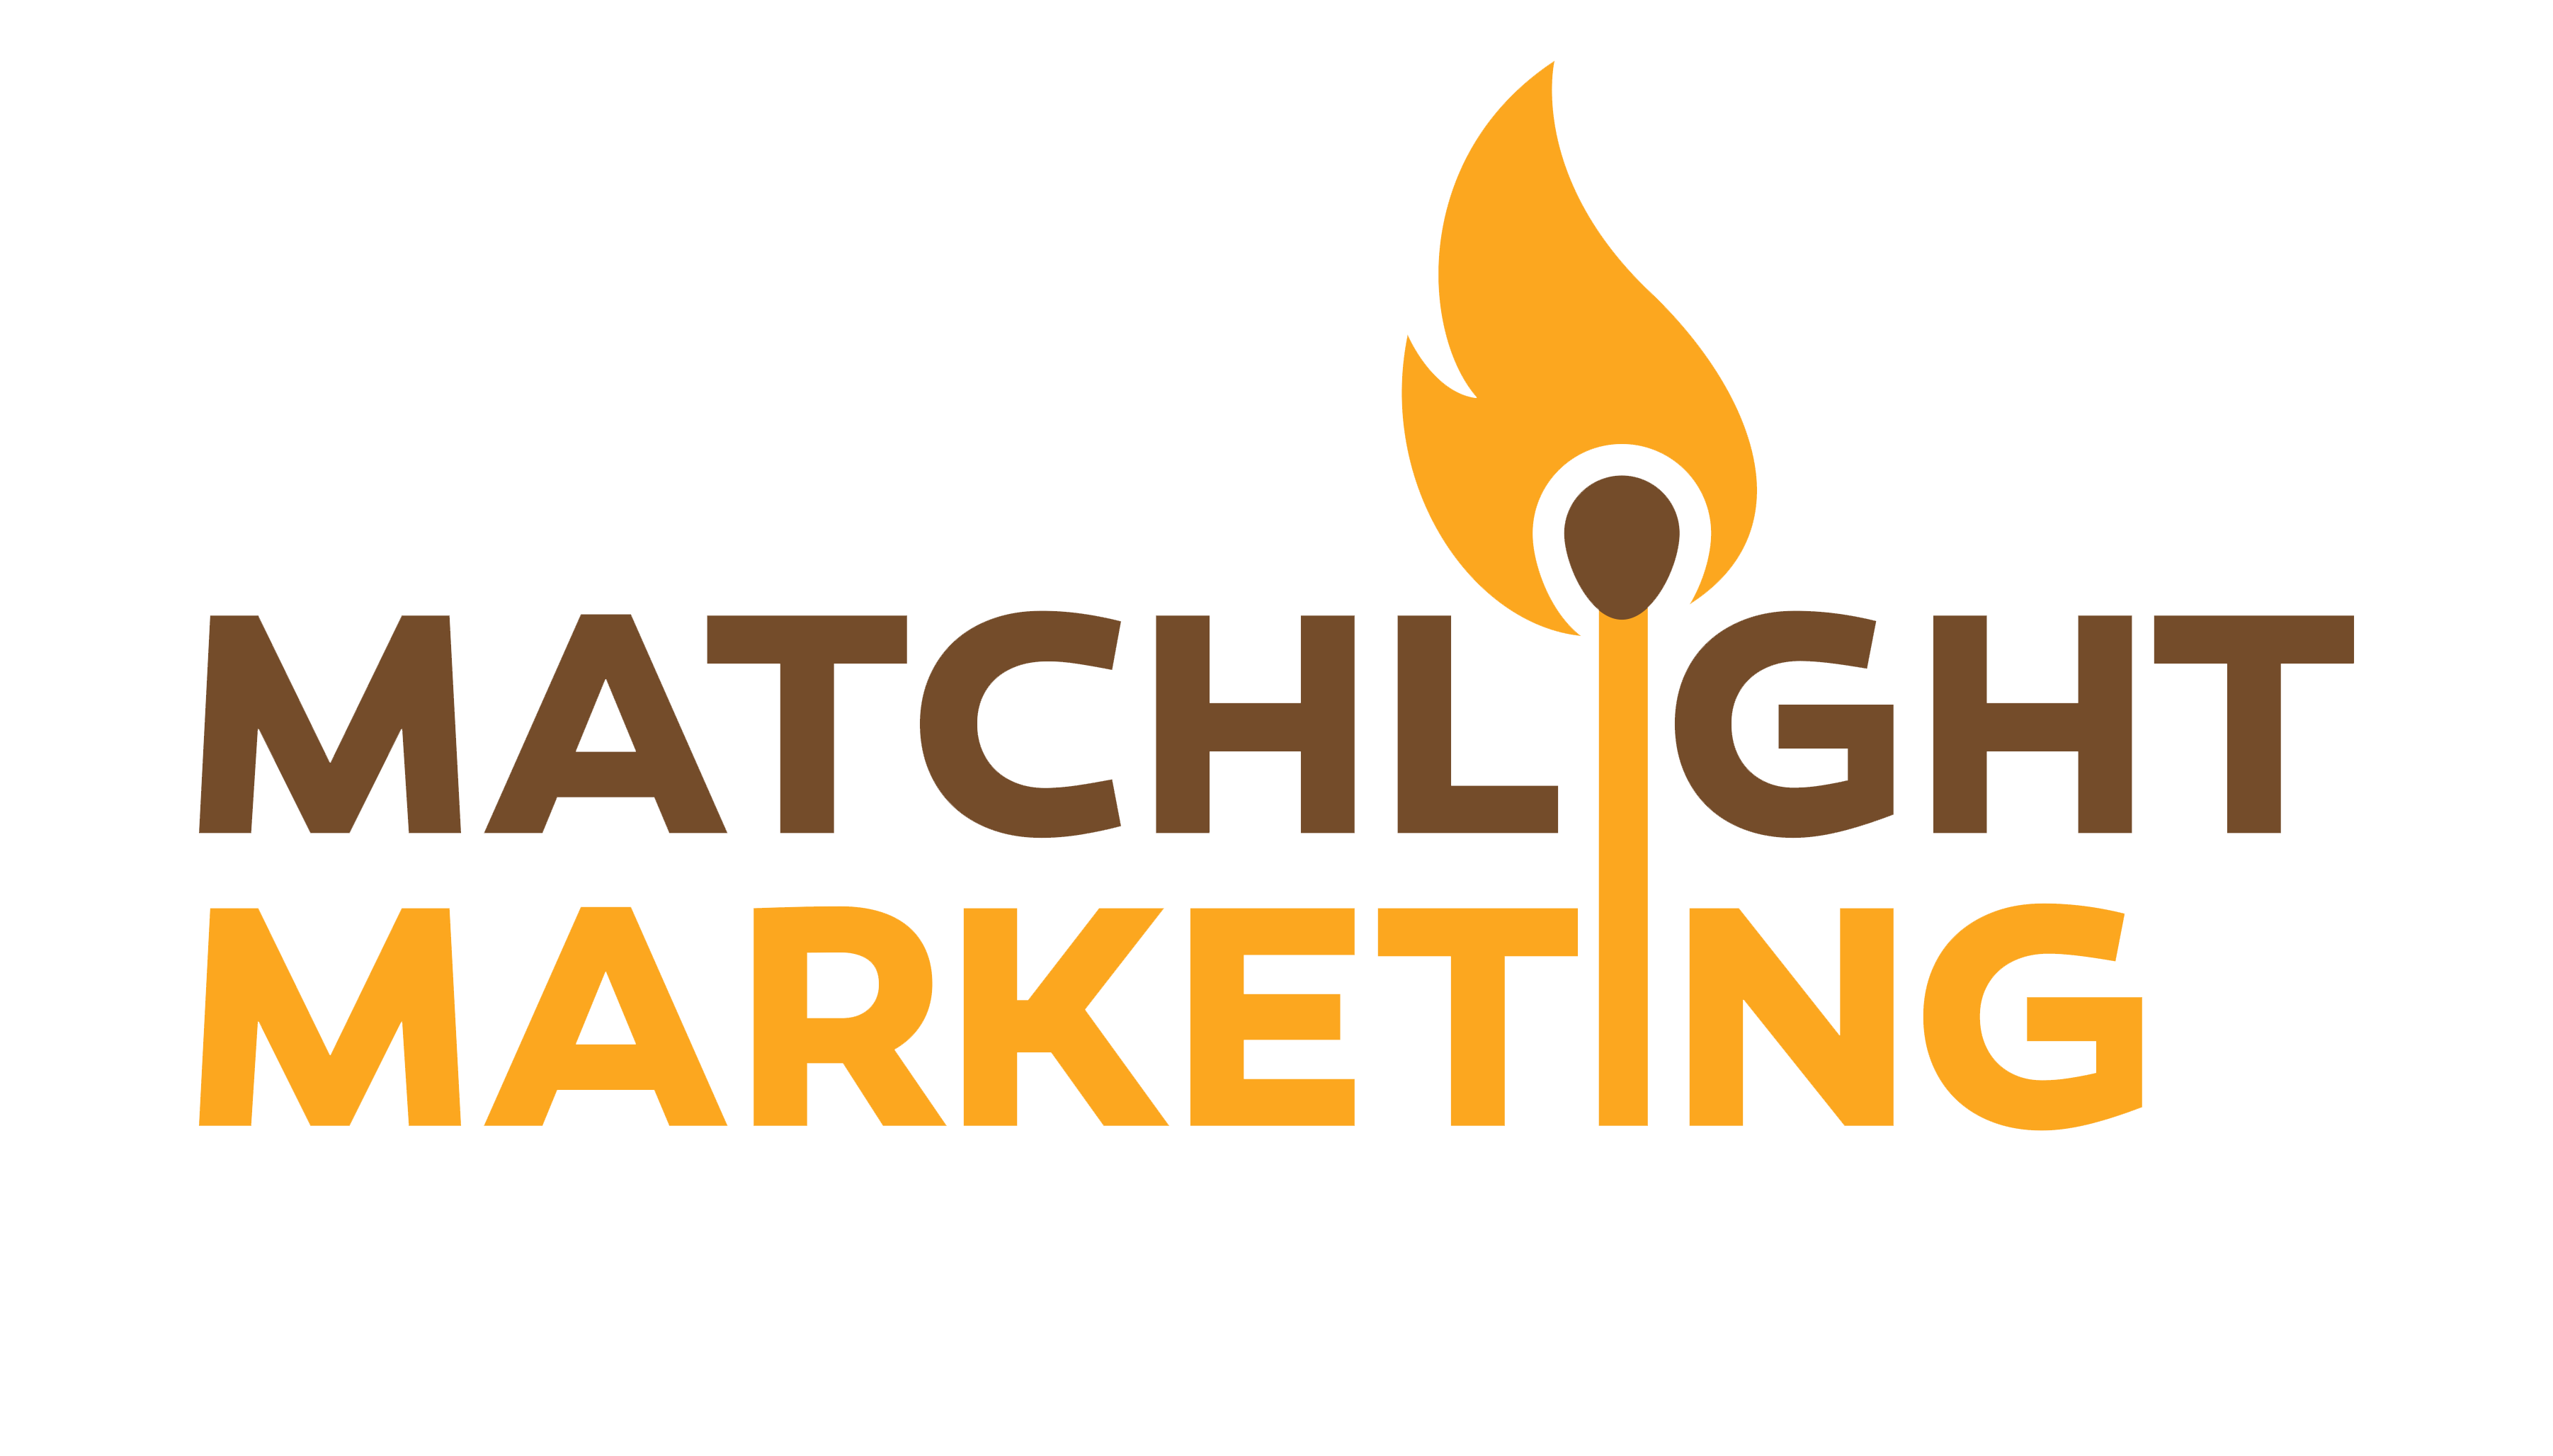 Matchlight Marketing